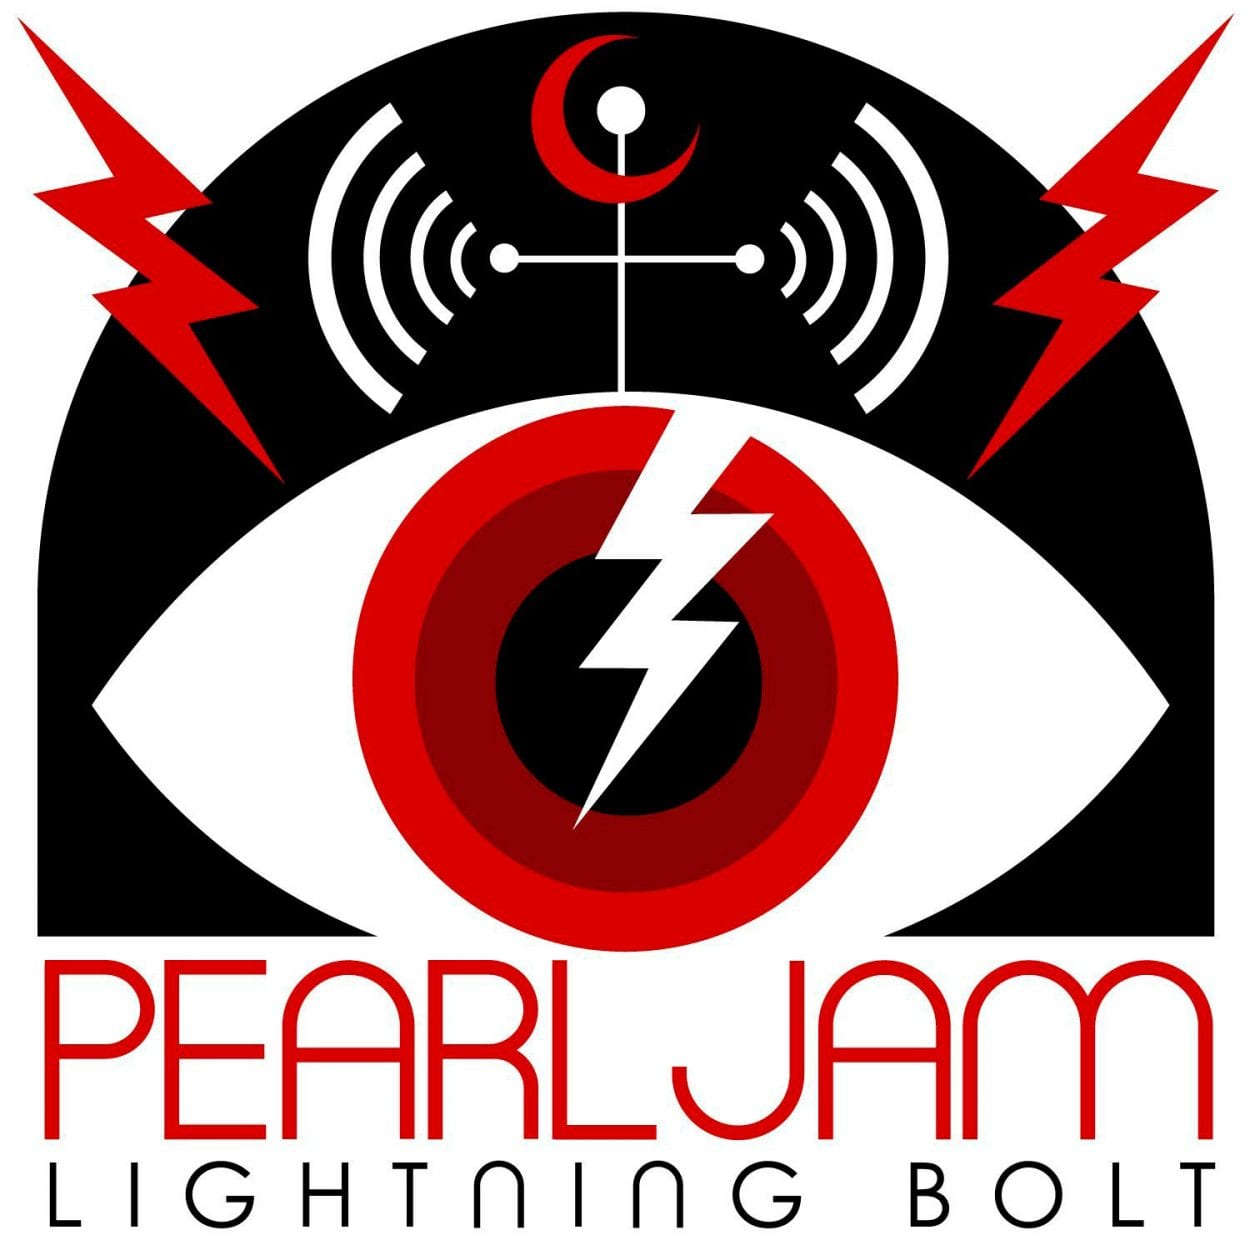 Art deco stylings of an eyeball with a red iris, and a white lightning bolt Image on it. An antenna is above it, appearing to broadcast signals from it.